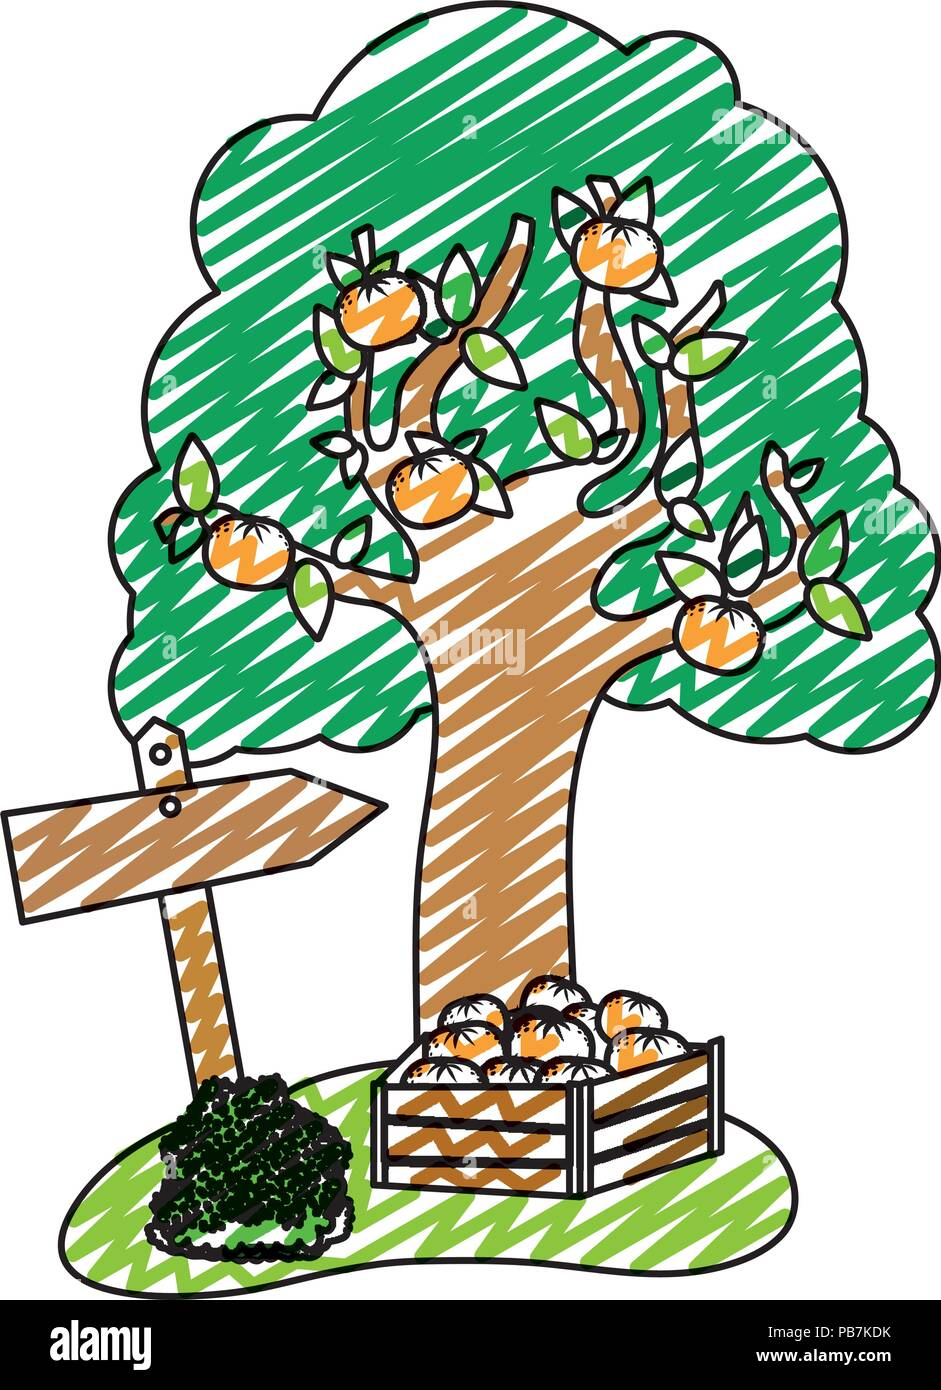 doodle farm fruit tree and oranges inside wood box - Stock Vector